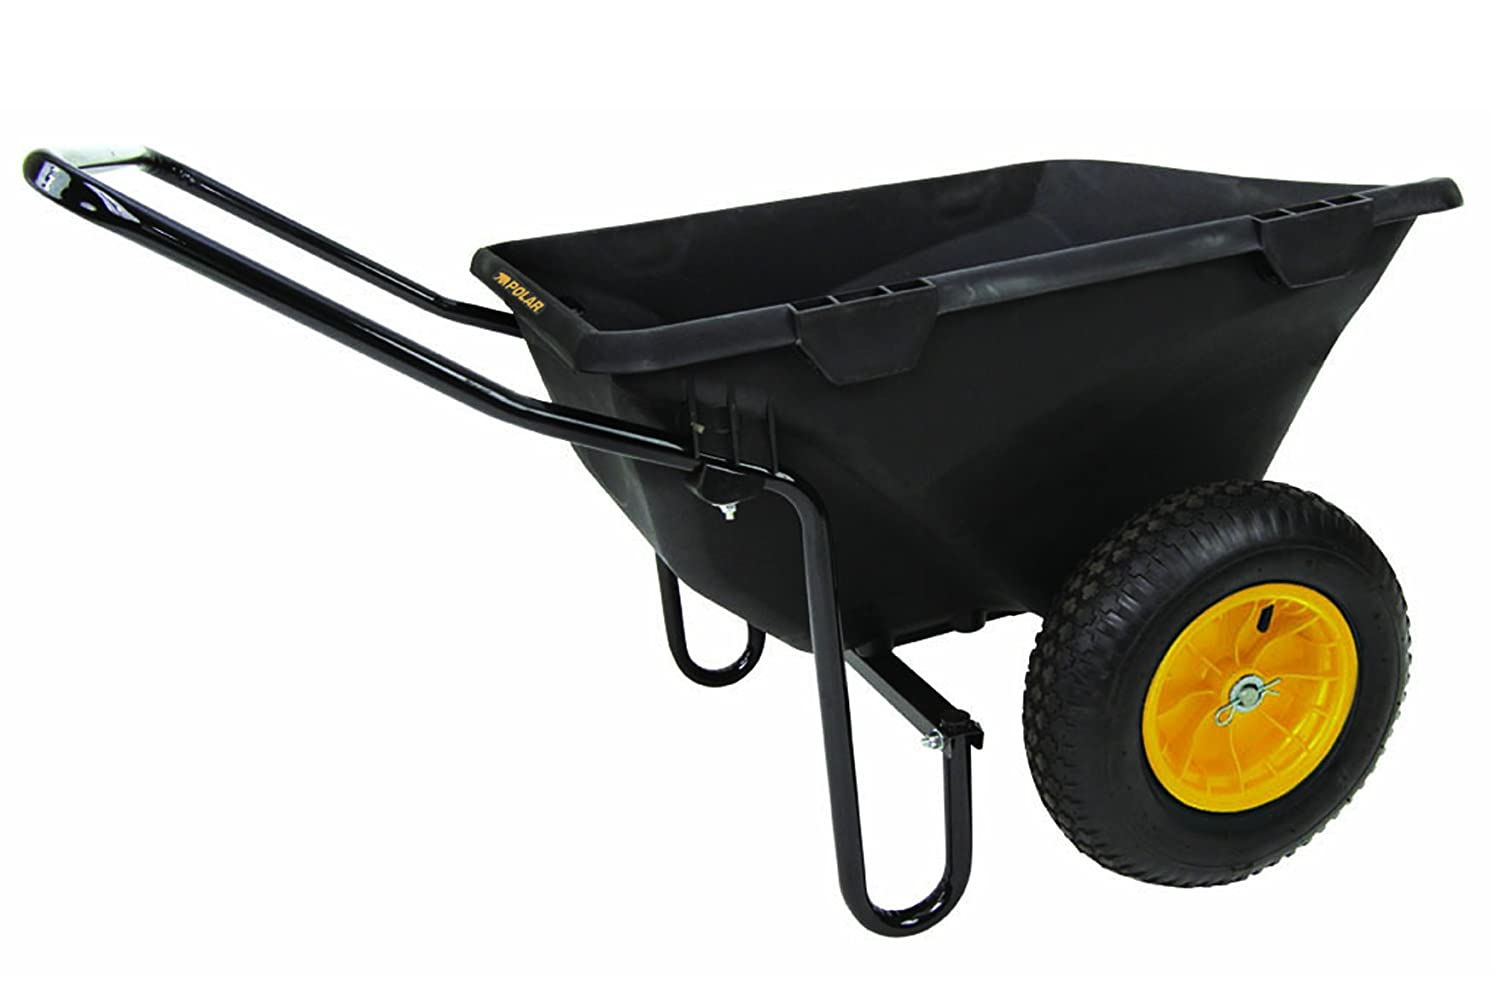 Polar Trailer 8449 7 Cubic Feet Heavy-Duty Cub Cart